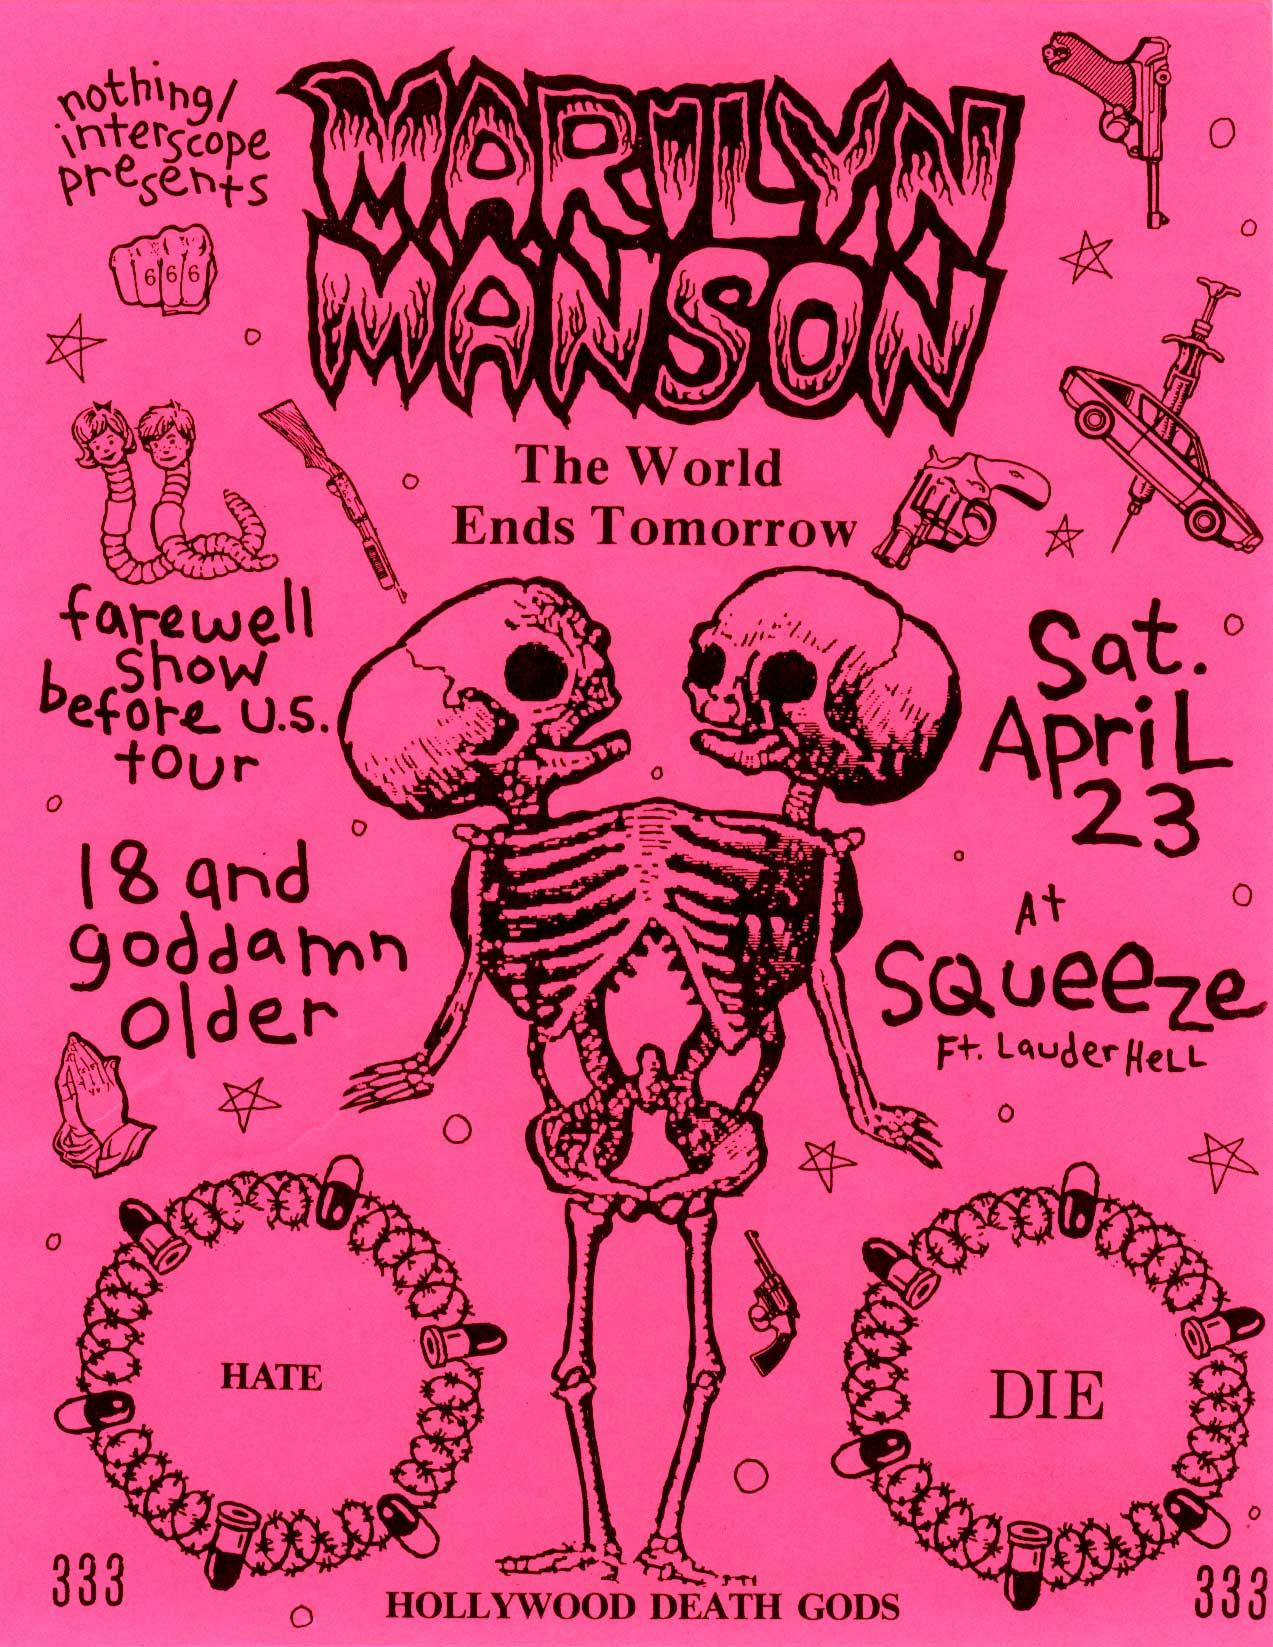 Marilyn Manson Australian 2 Sheet Promo Poster Hollywood Album 2000 152 X 102cm Click Pic To Find In Ebay Store Poster Music Poster Concert Posters